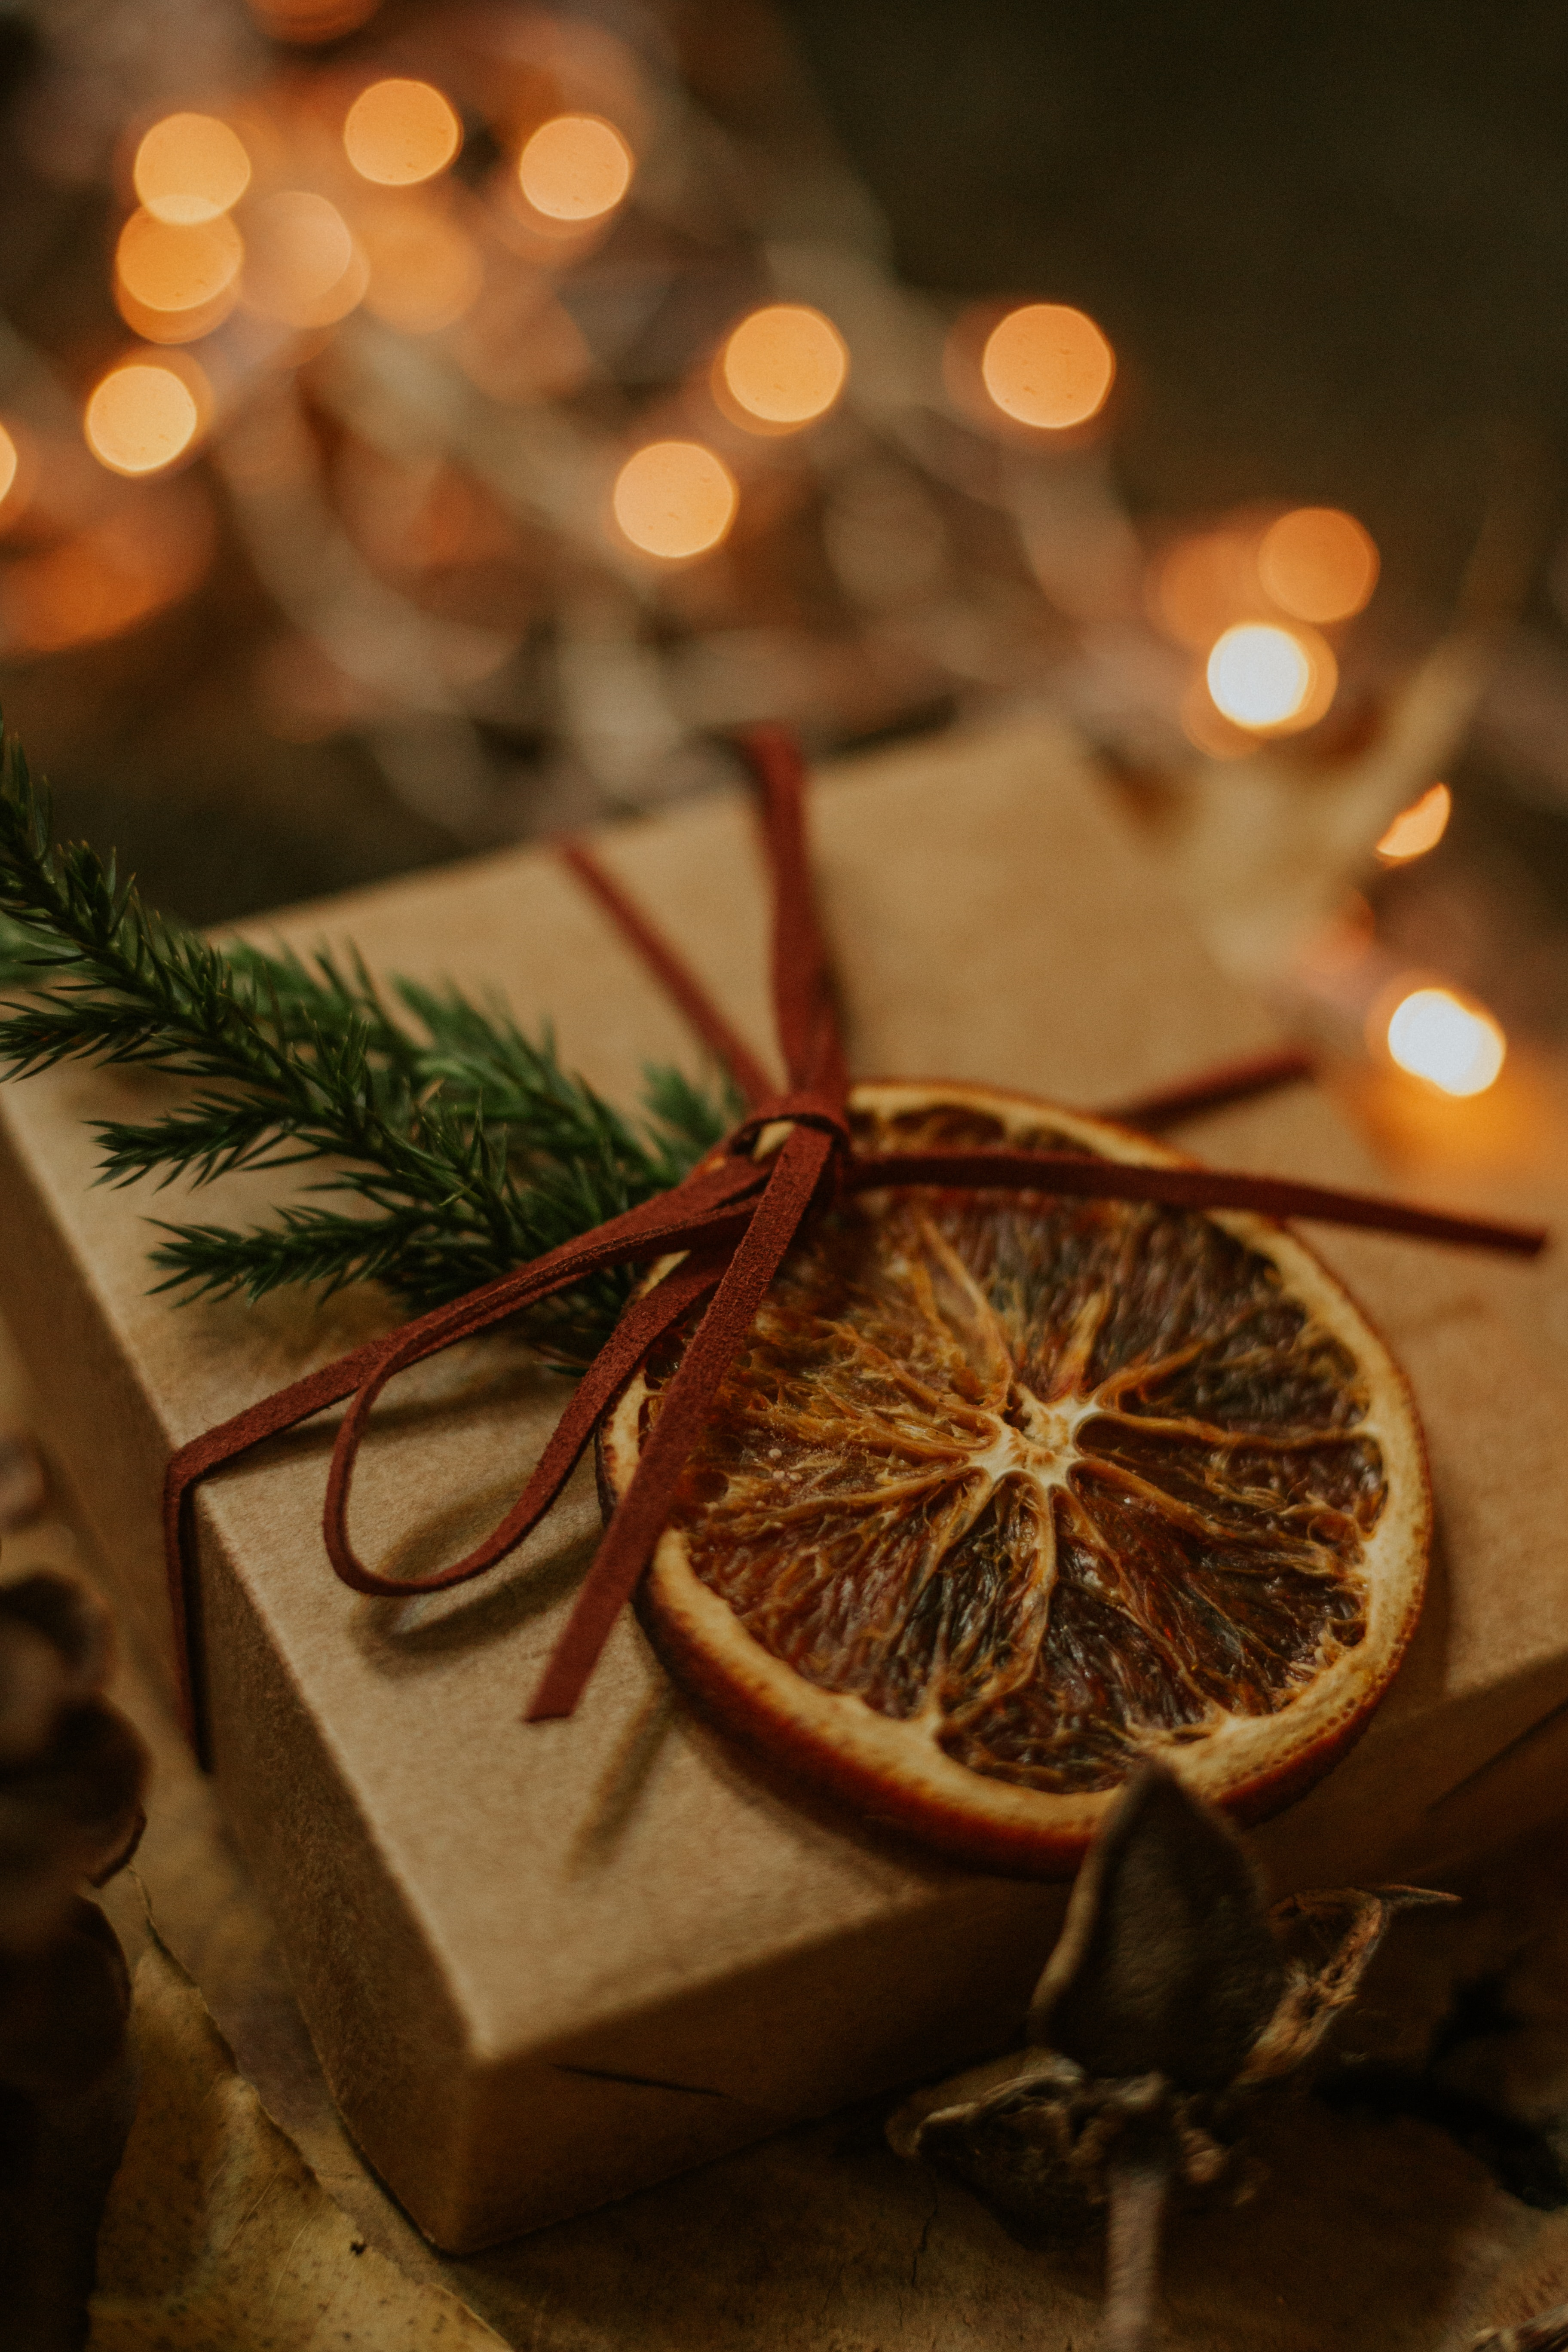 86246 download wallpaper Holidays, Present, Gift, Box, Bow, Branch, Lobule, Clove screensavers and pictures for free